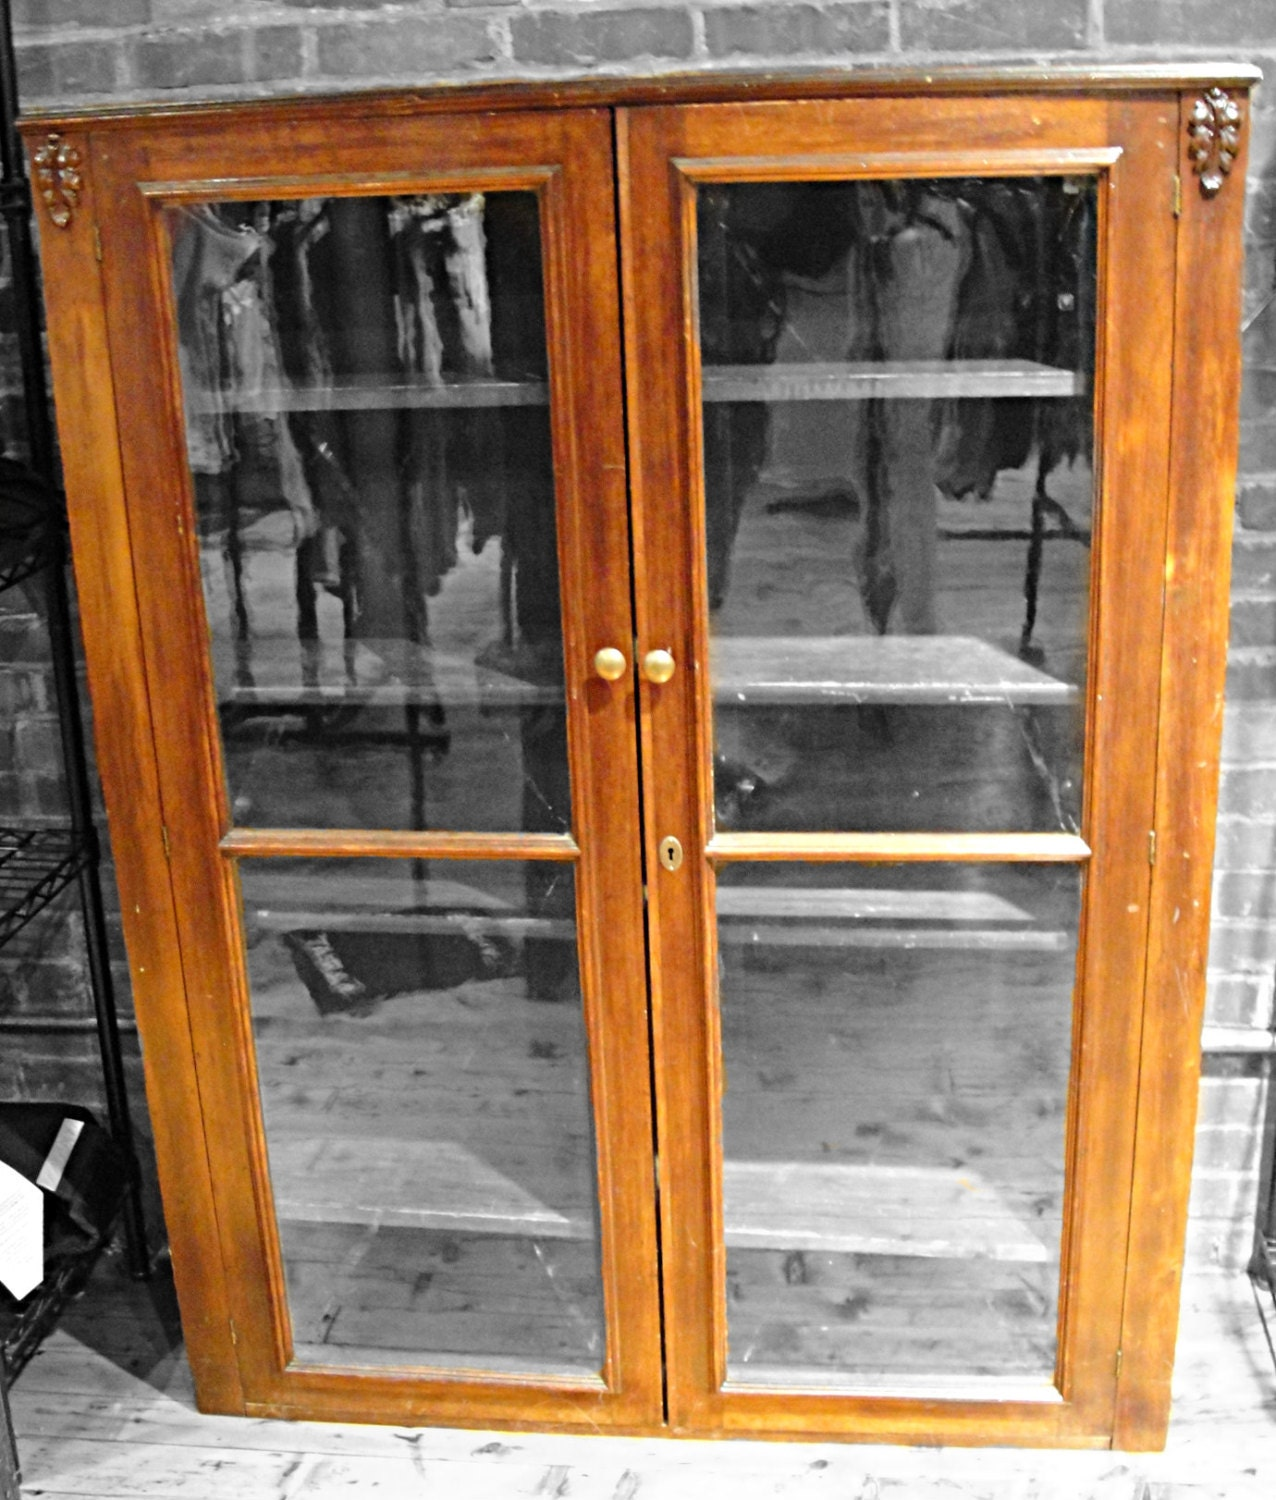 1500 #C77804 Vintage Bookcase Glass Doors Wood Filigree By RustyNailDesign picture/photo Wood And Glass Doors 40191276